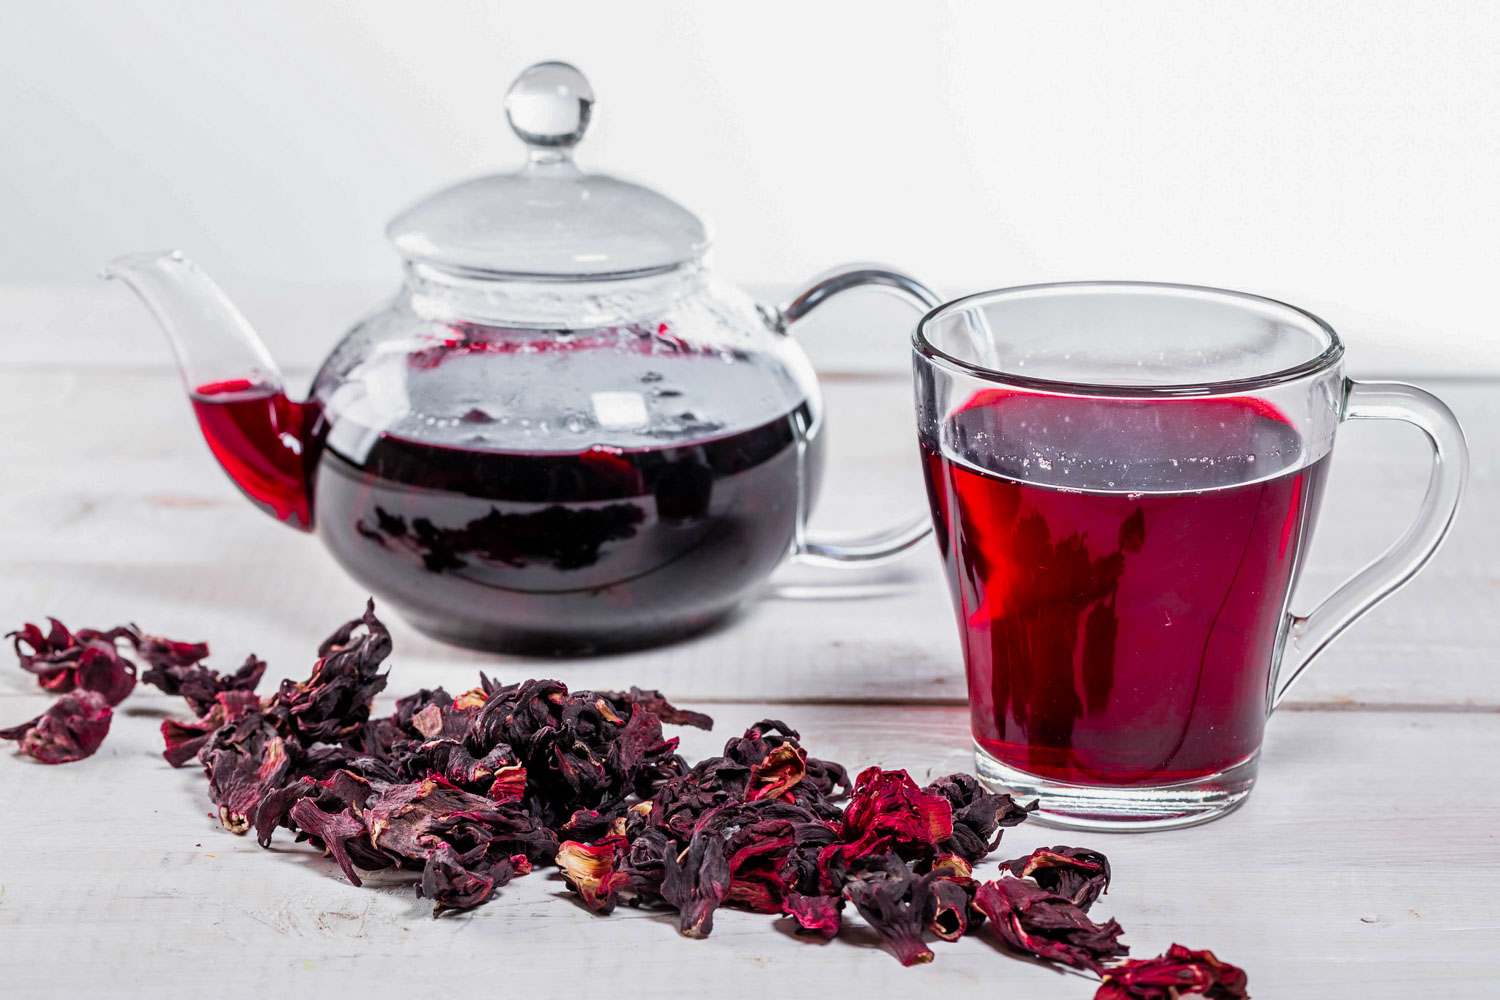 Jamaican drink sorrel tea dried flowers, tea pot and glass